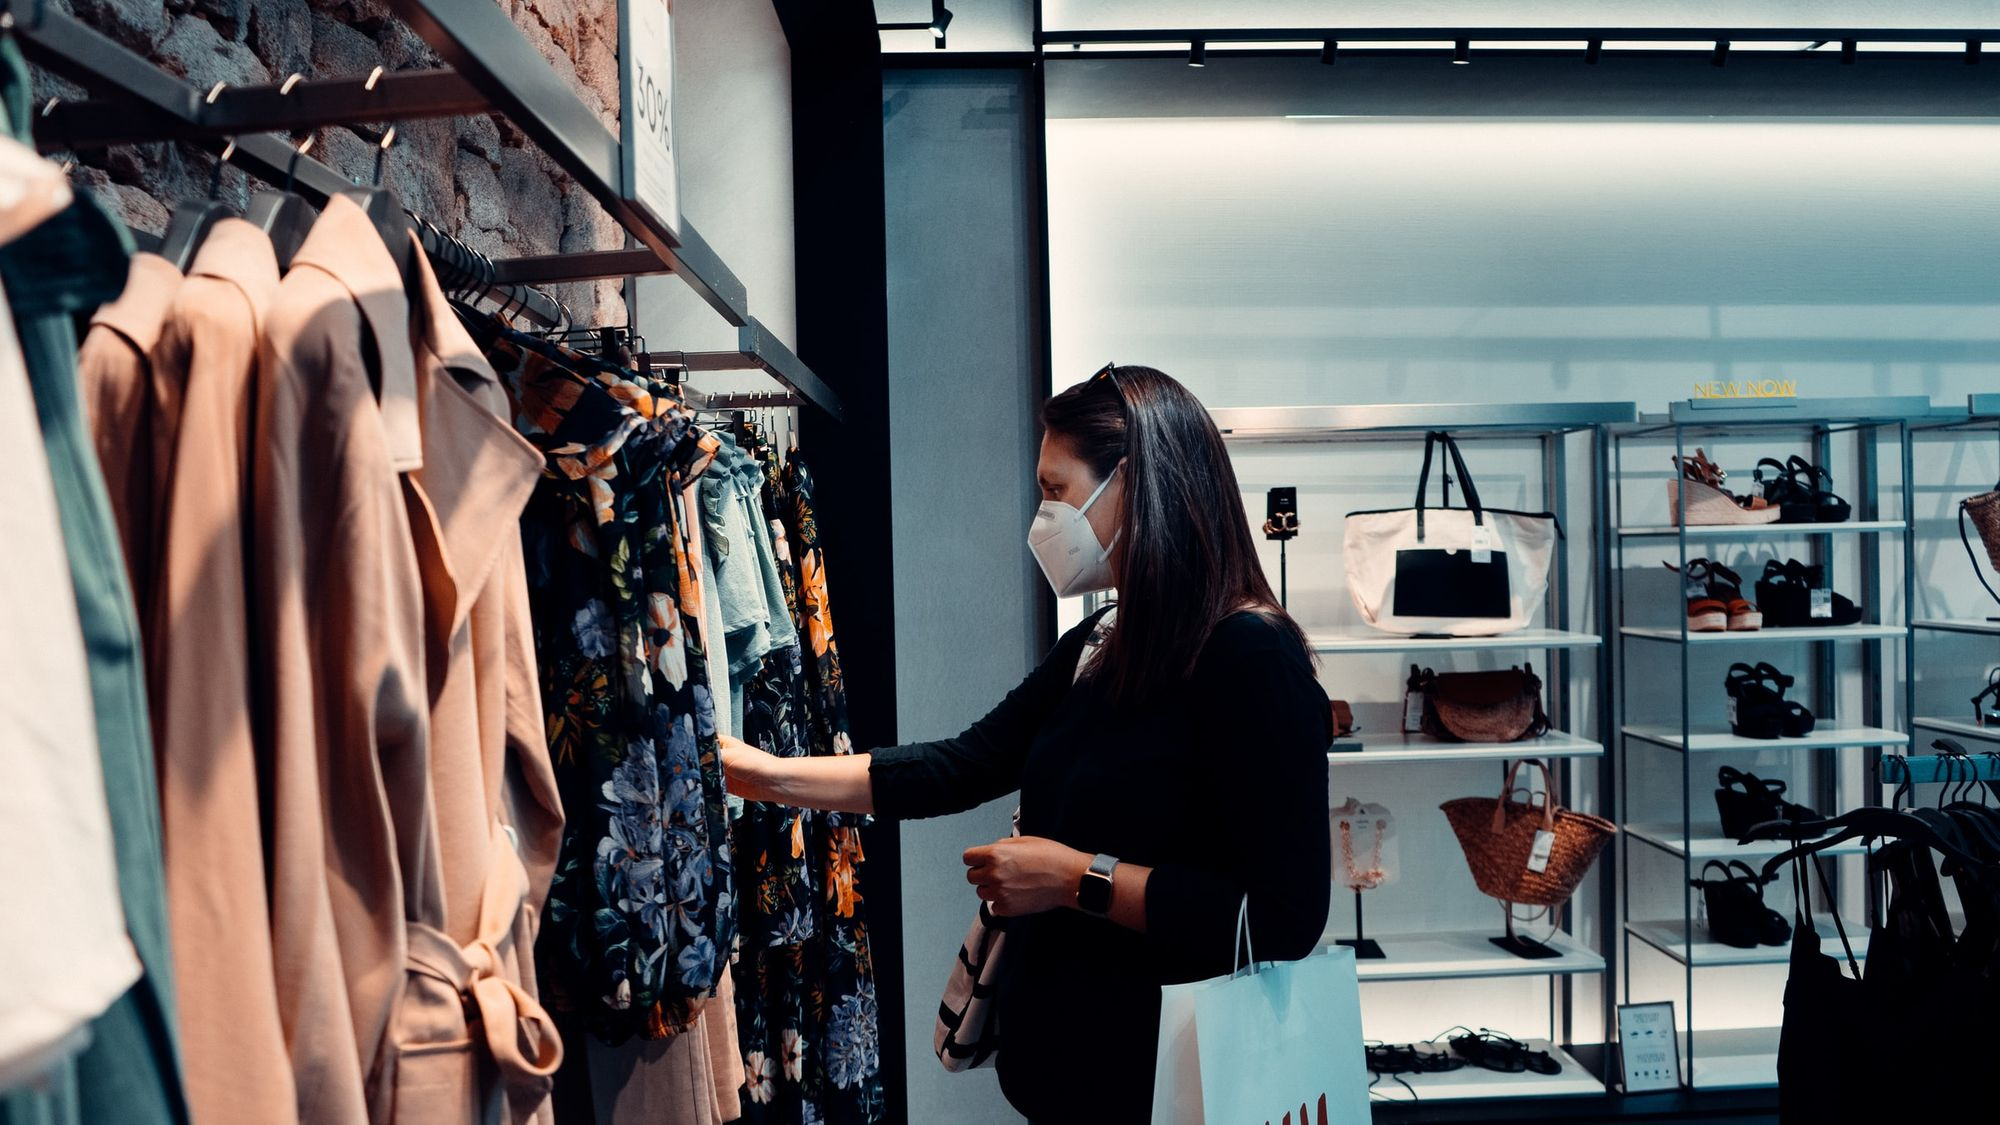 A woman shopping for garments during COVID-19 outbreak.